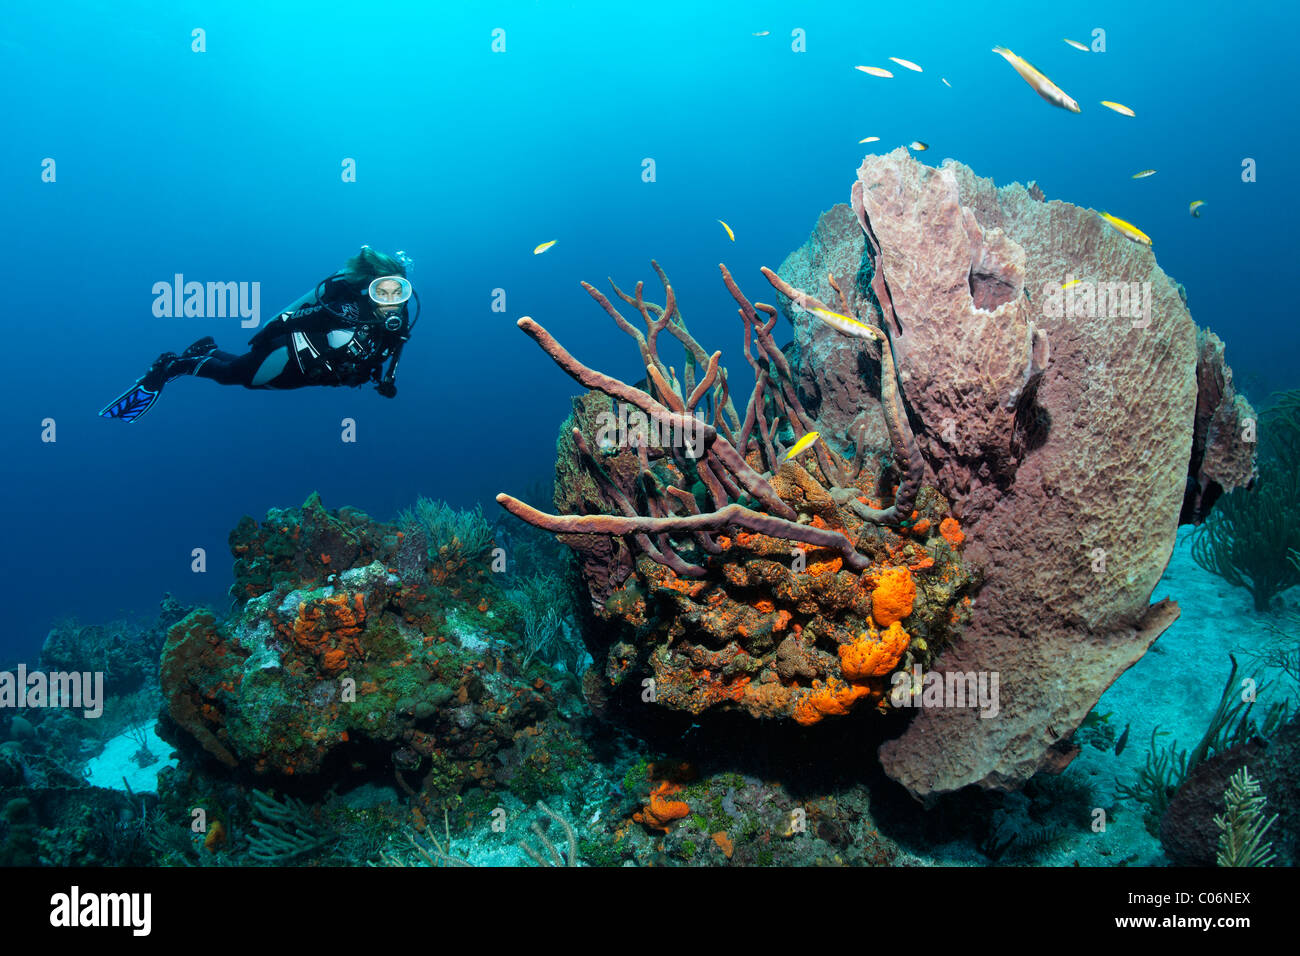 Diver, Fvarious multicoloured sponges and corals, sandy ground, Little Tobago, Speyside, Trinidad and Tobago, Lesser - Stock Image